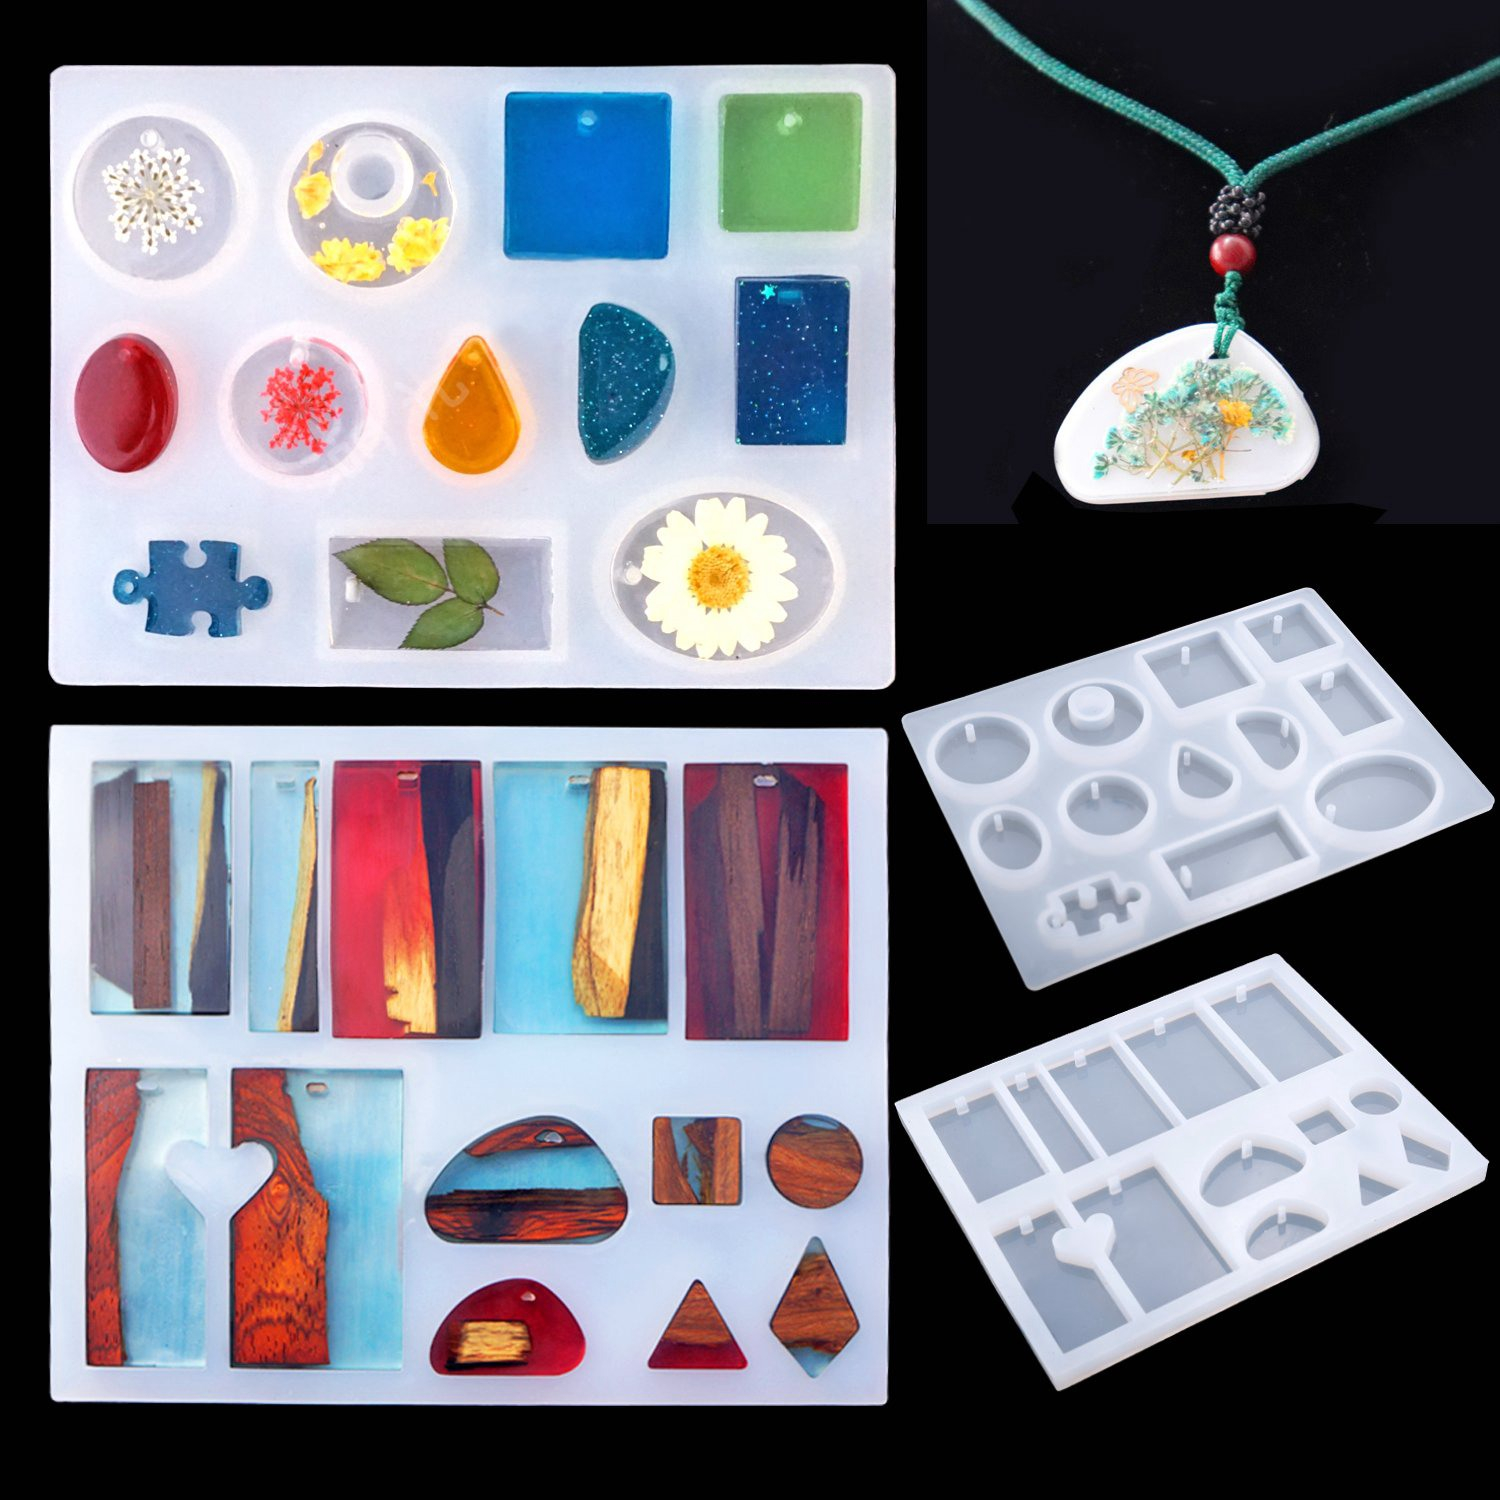 83 Pieces Silicone Casting Molds And Tools Set With A Black Storage Bag For Diy Jewelry